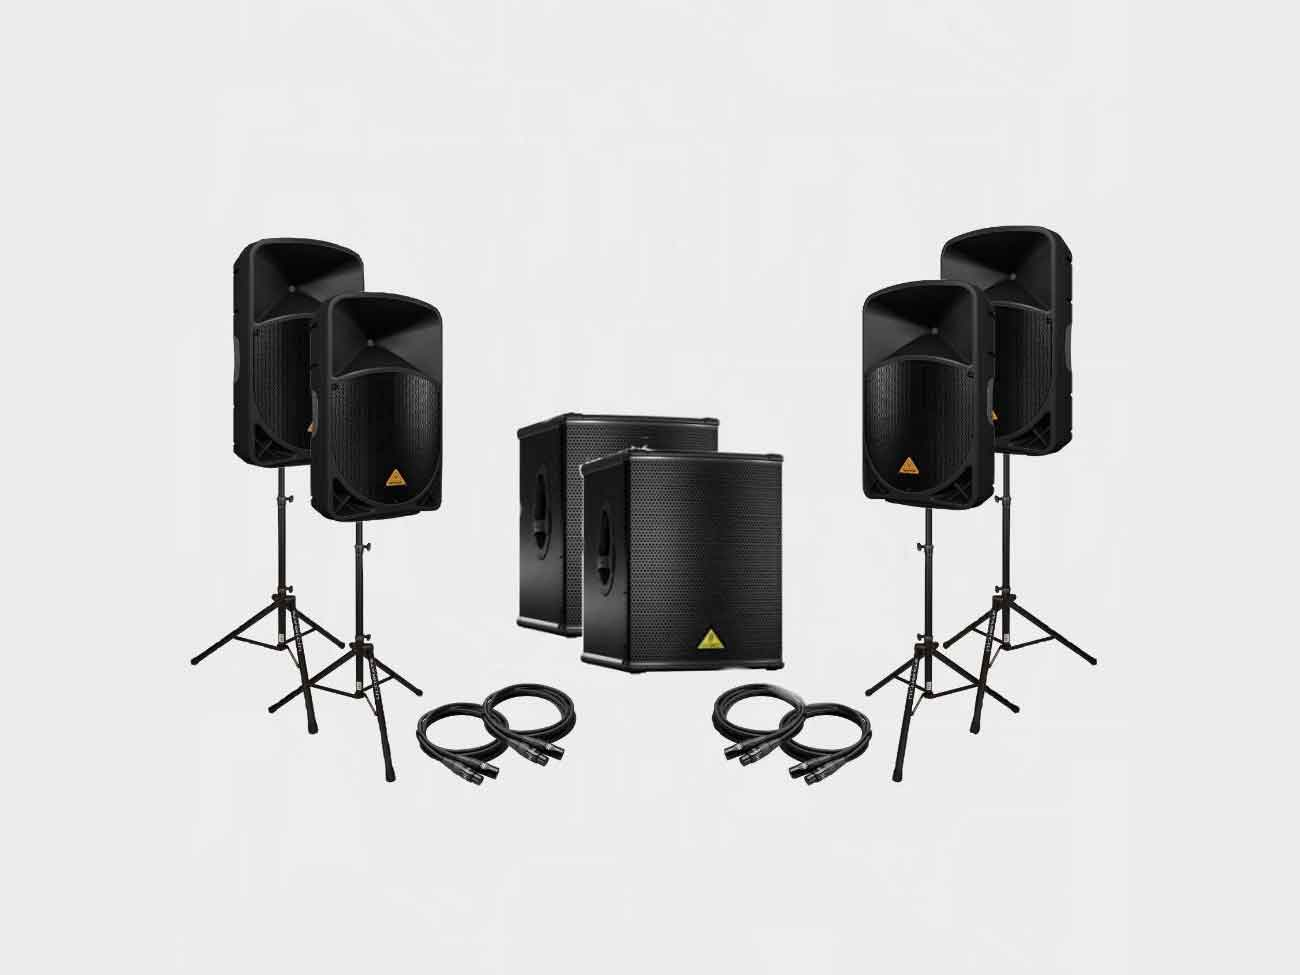 Ini Dia Merek dan Jenis Sound System Rekomendasi